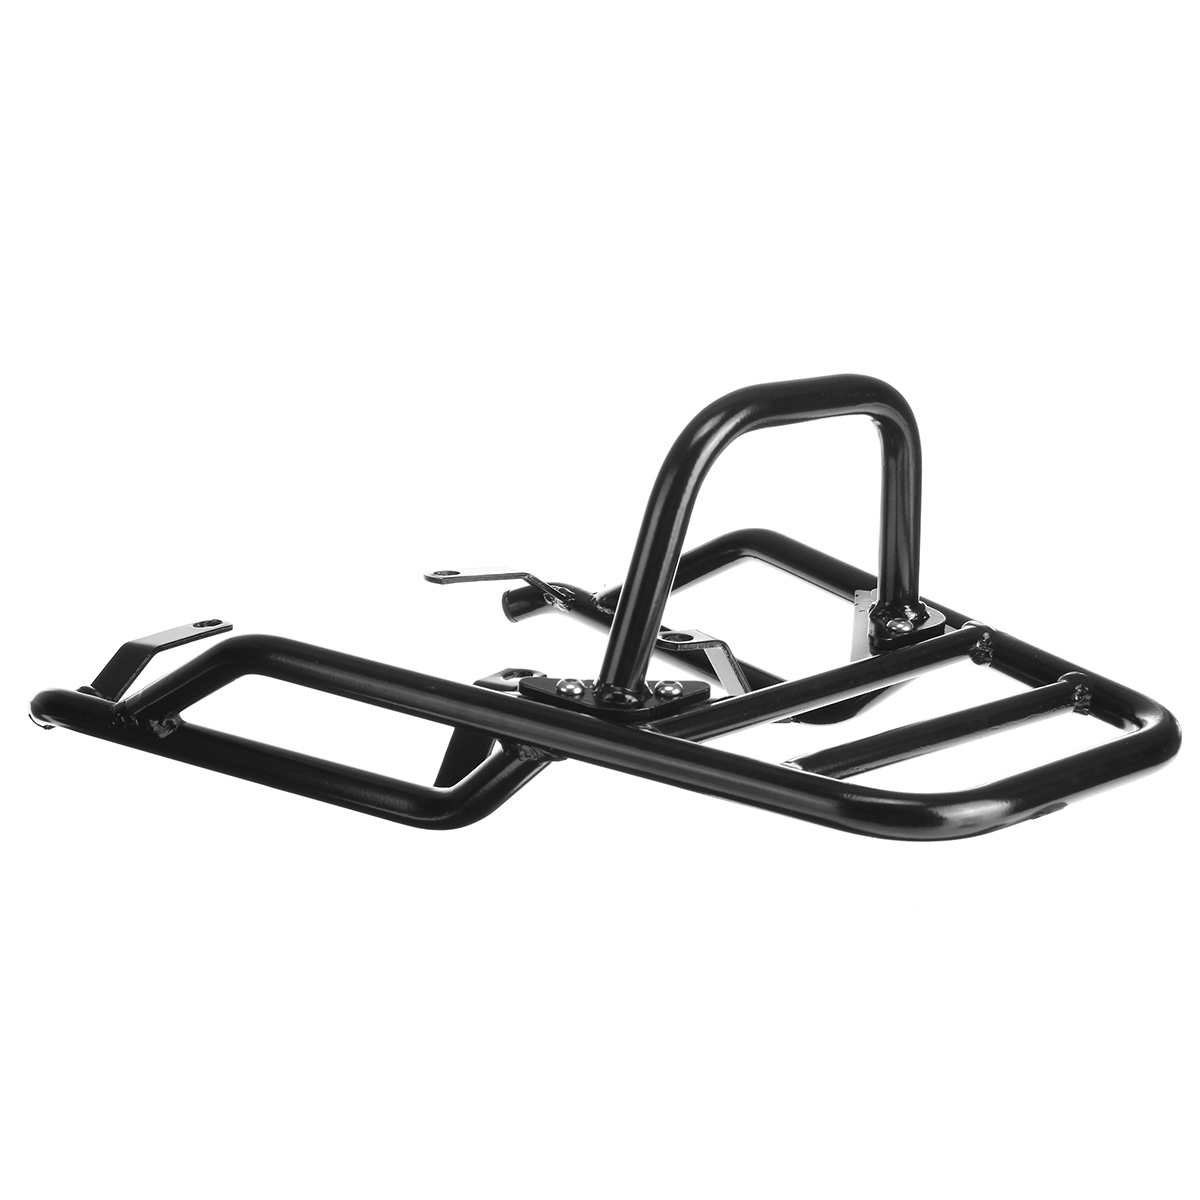 Rear Luggage Rack with Passenger Grab Handlebar For BMW R Nine T R9T 2013-2018 Motorcycle Black